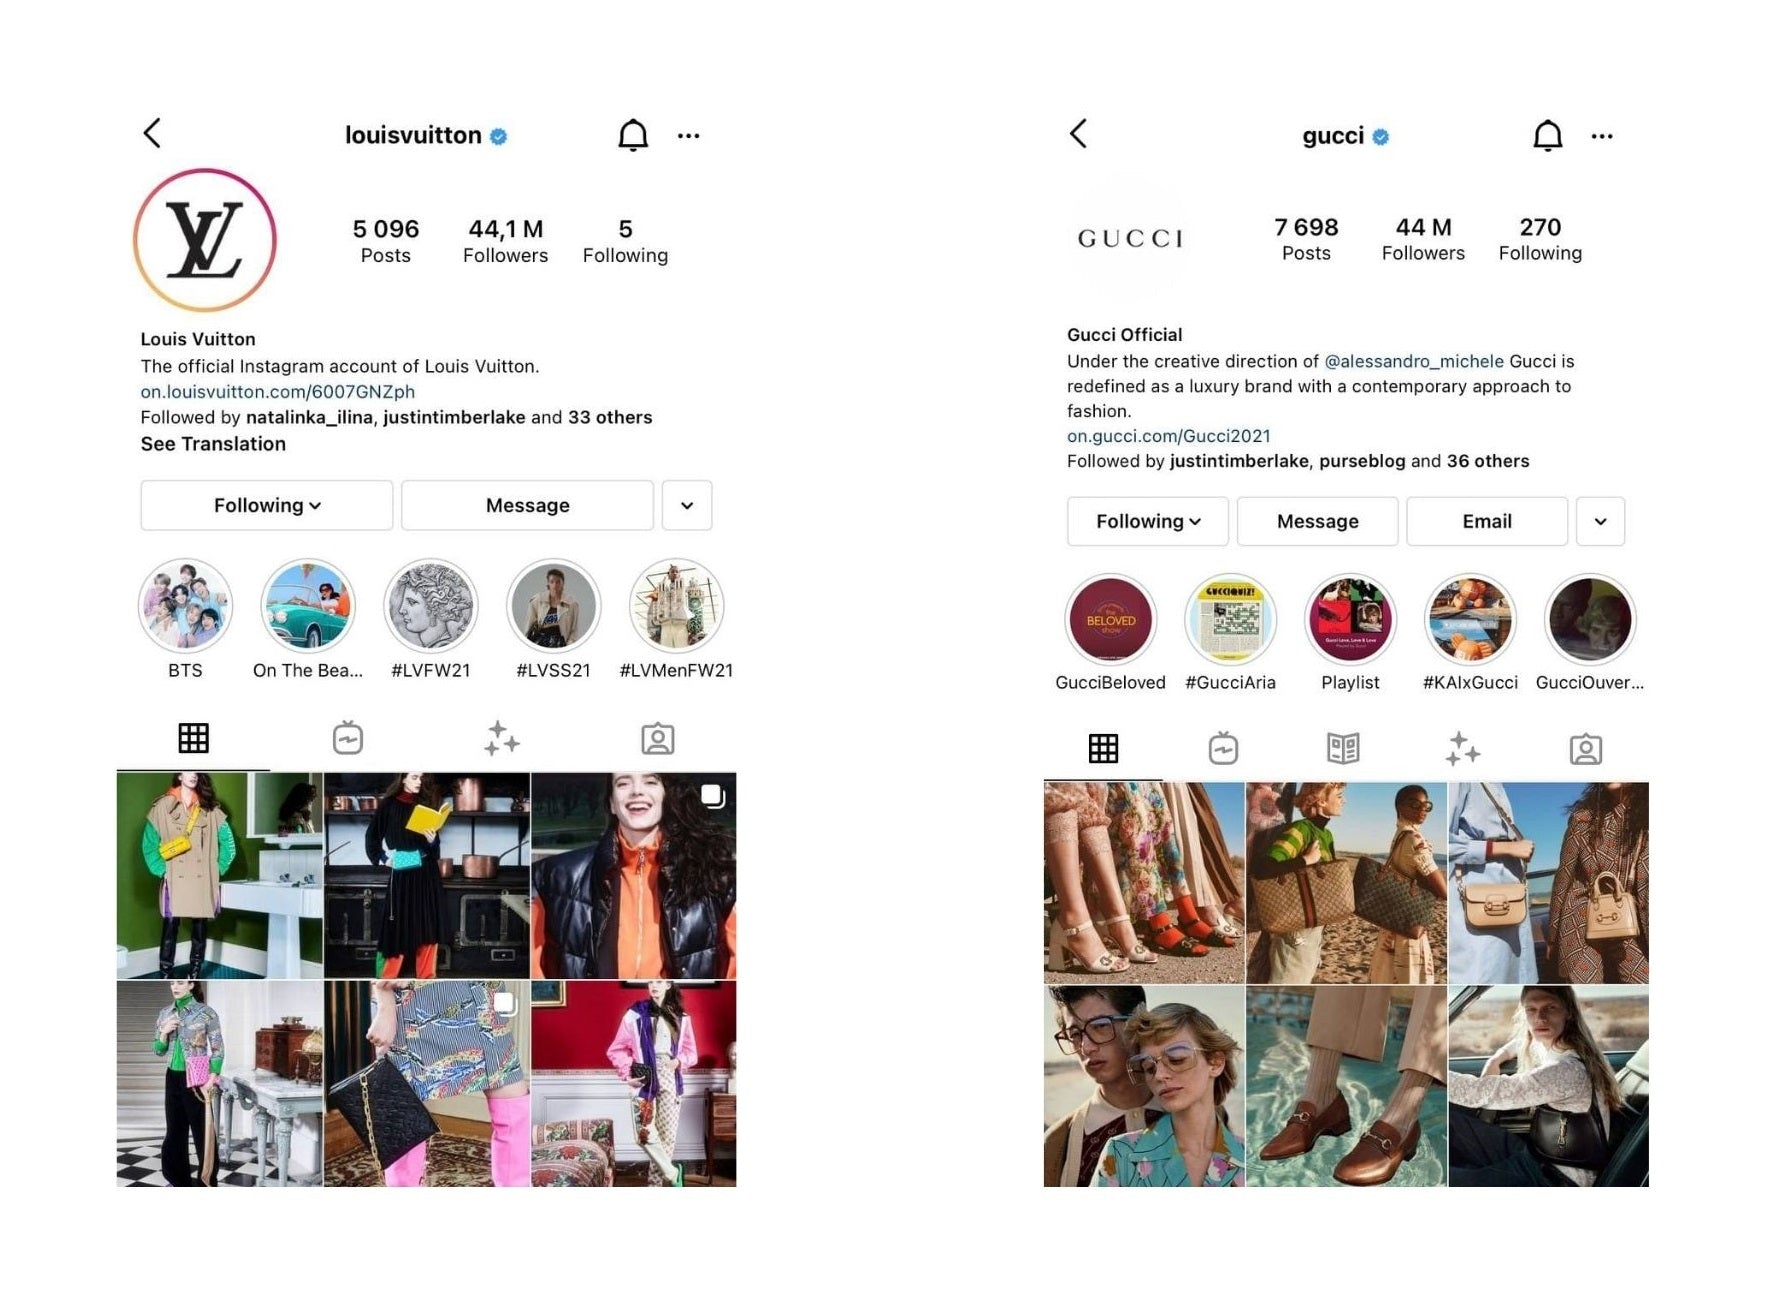 Which Brand Is Better: Louis Vuitton vs Gucci social media